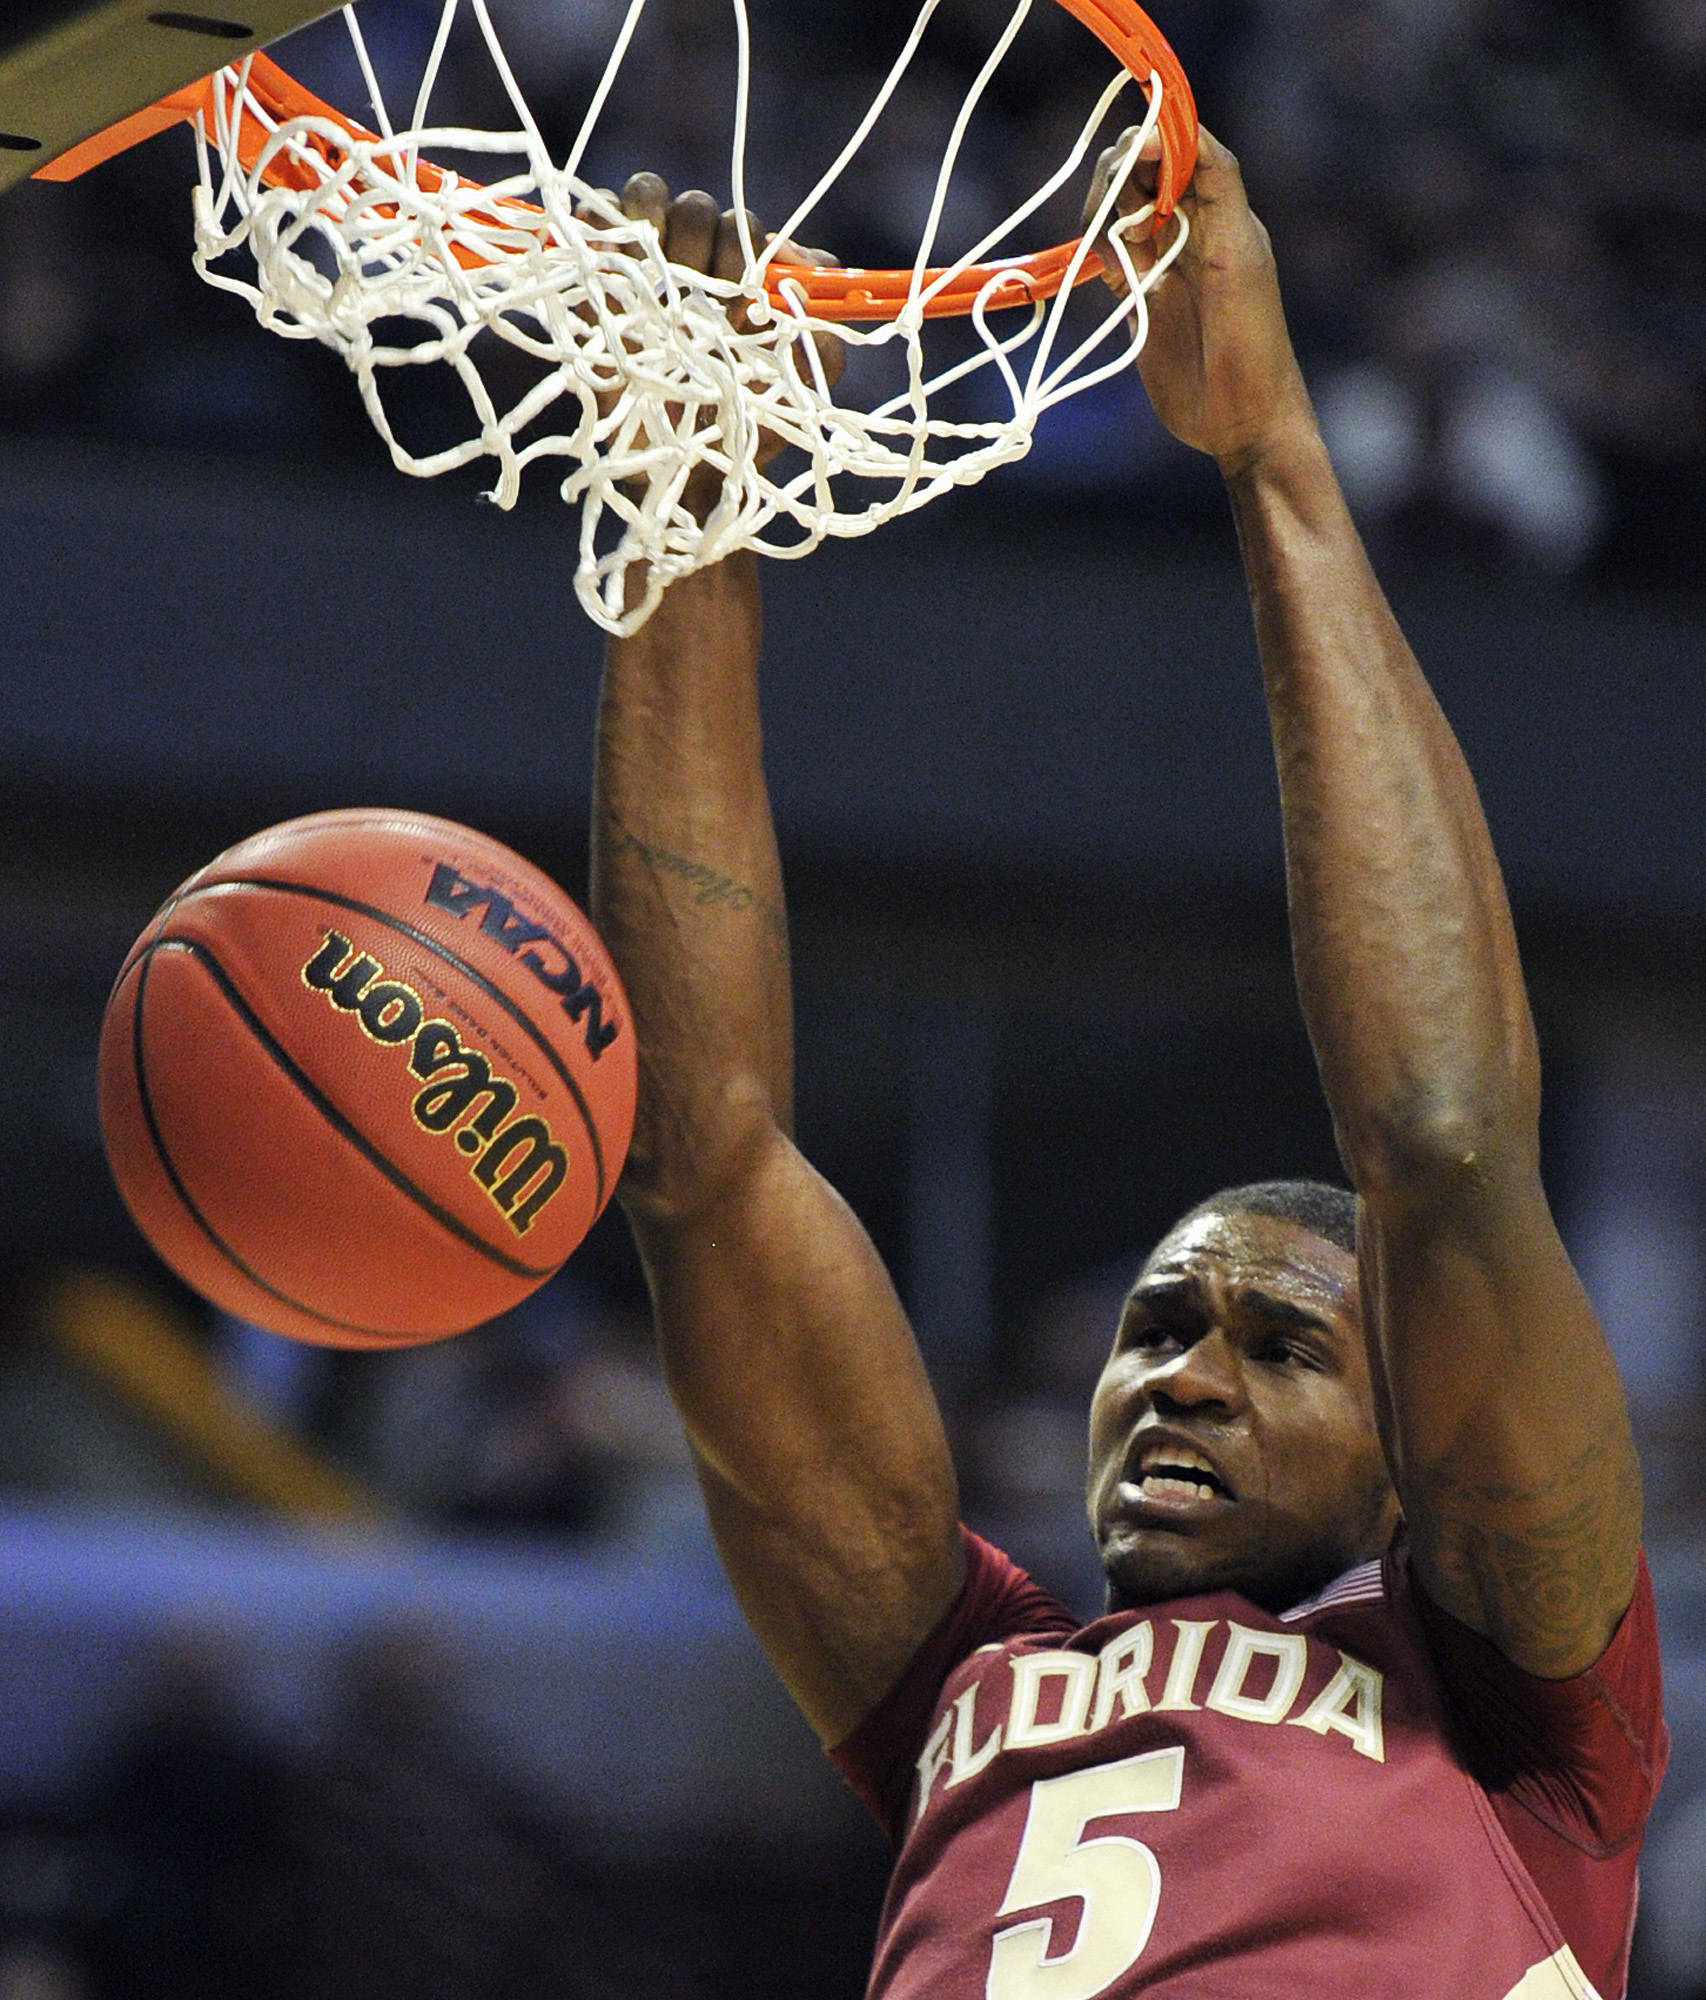 Florida State's Bernard James slam dunks against Texas A&M in the second half. (AP Photo/Jim Prisching)